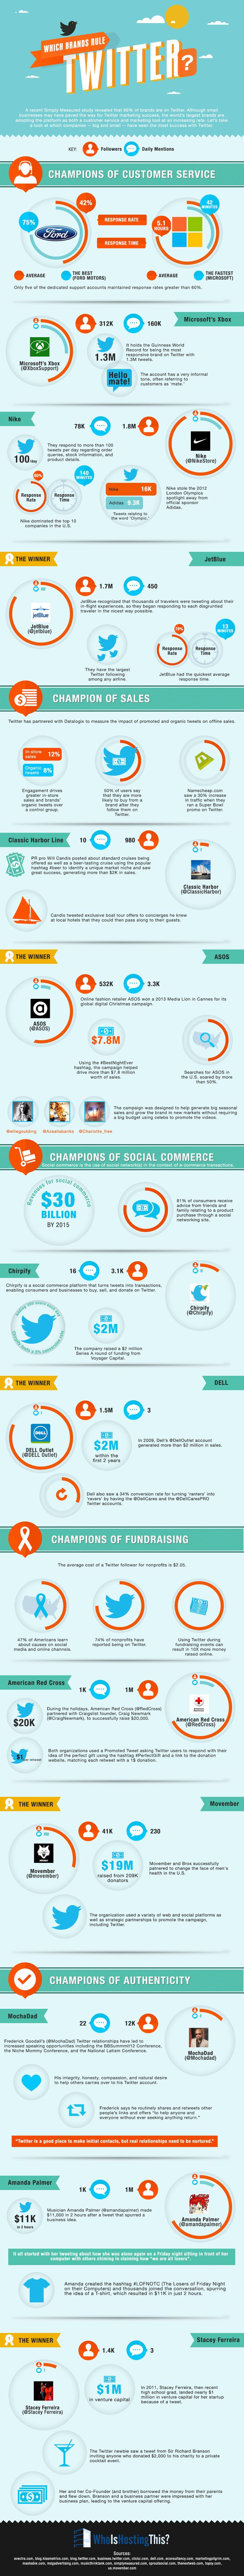 Which Brands Rule Twitter? [INFOGRAPHIC]